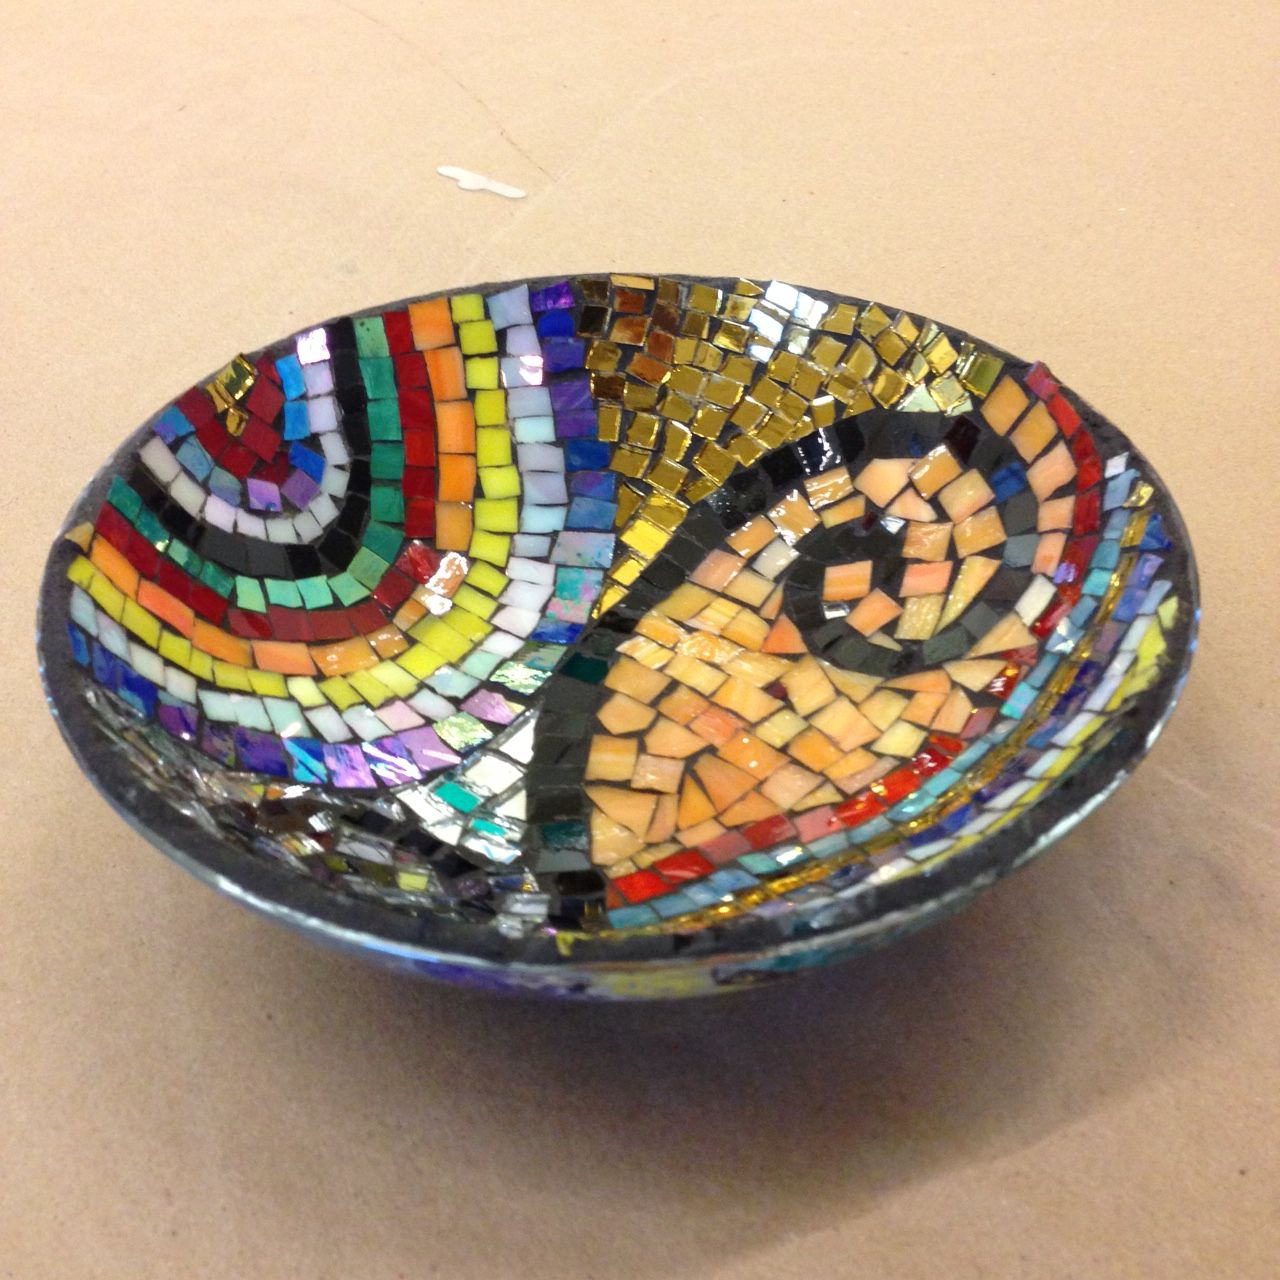 Glass mosaic on glass bowl created by Patricia!